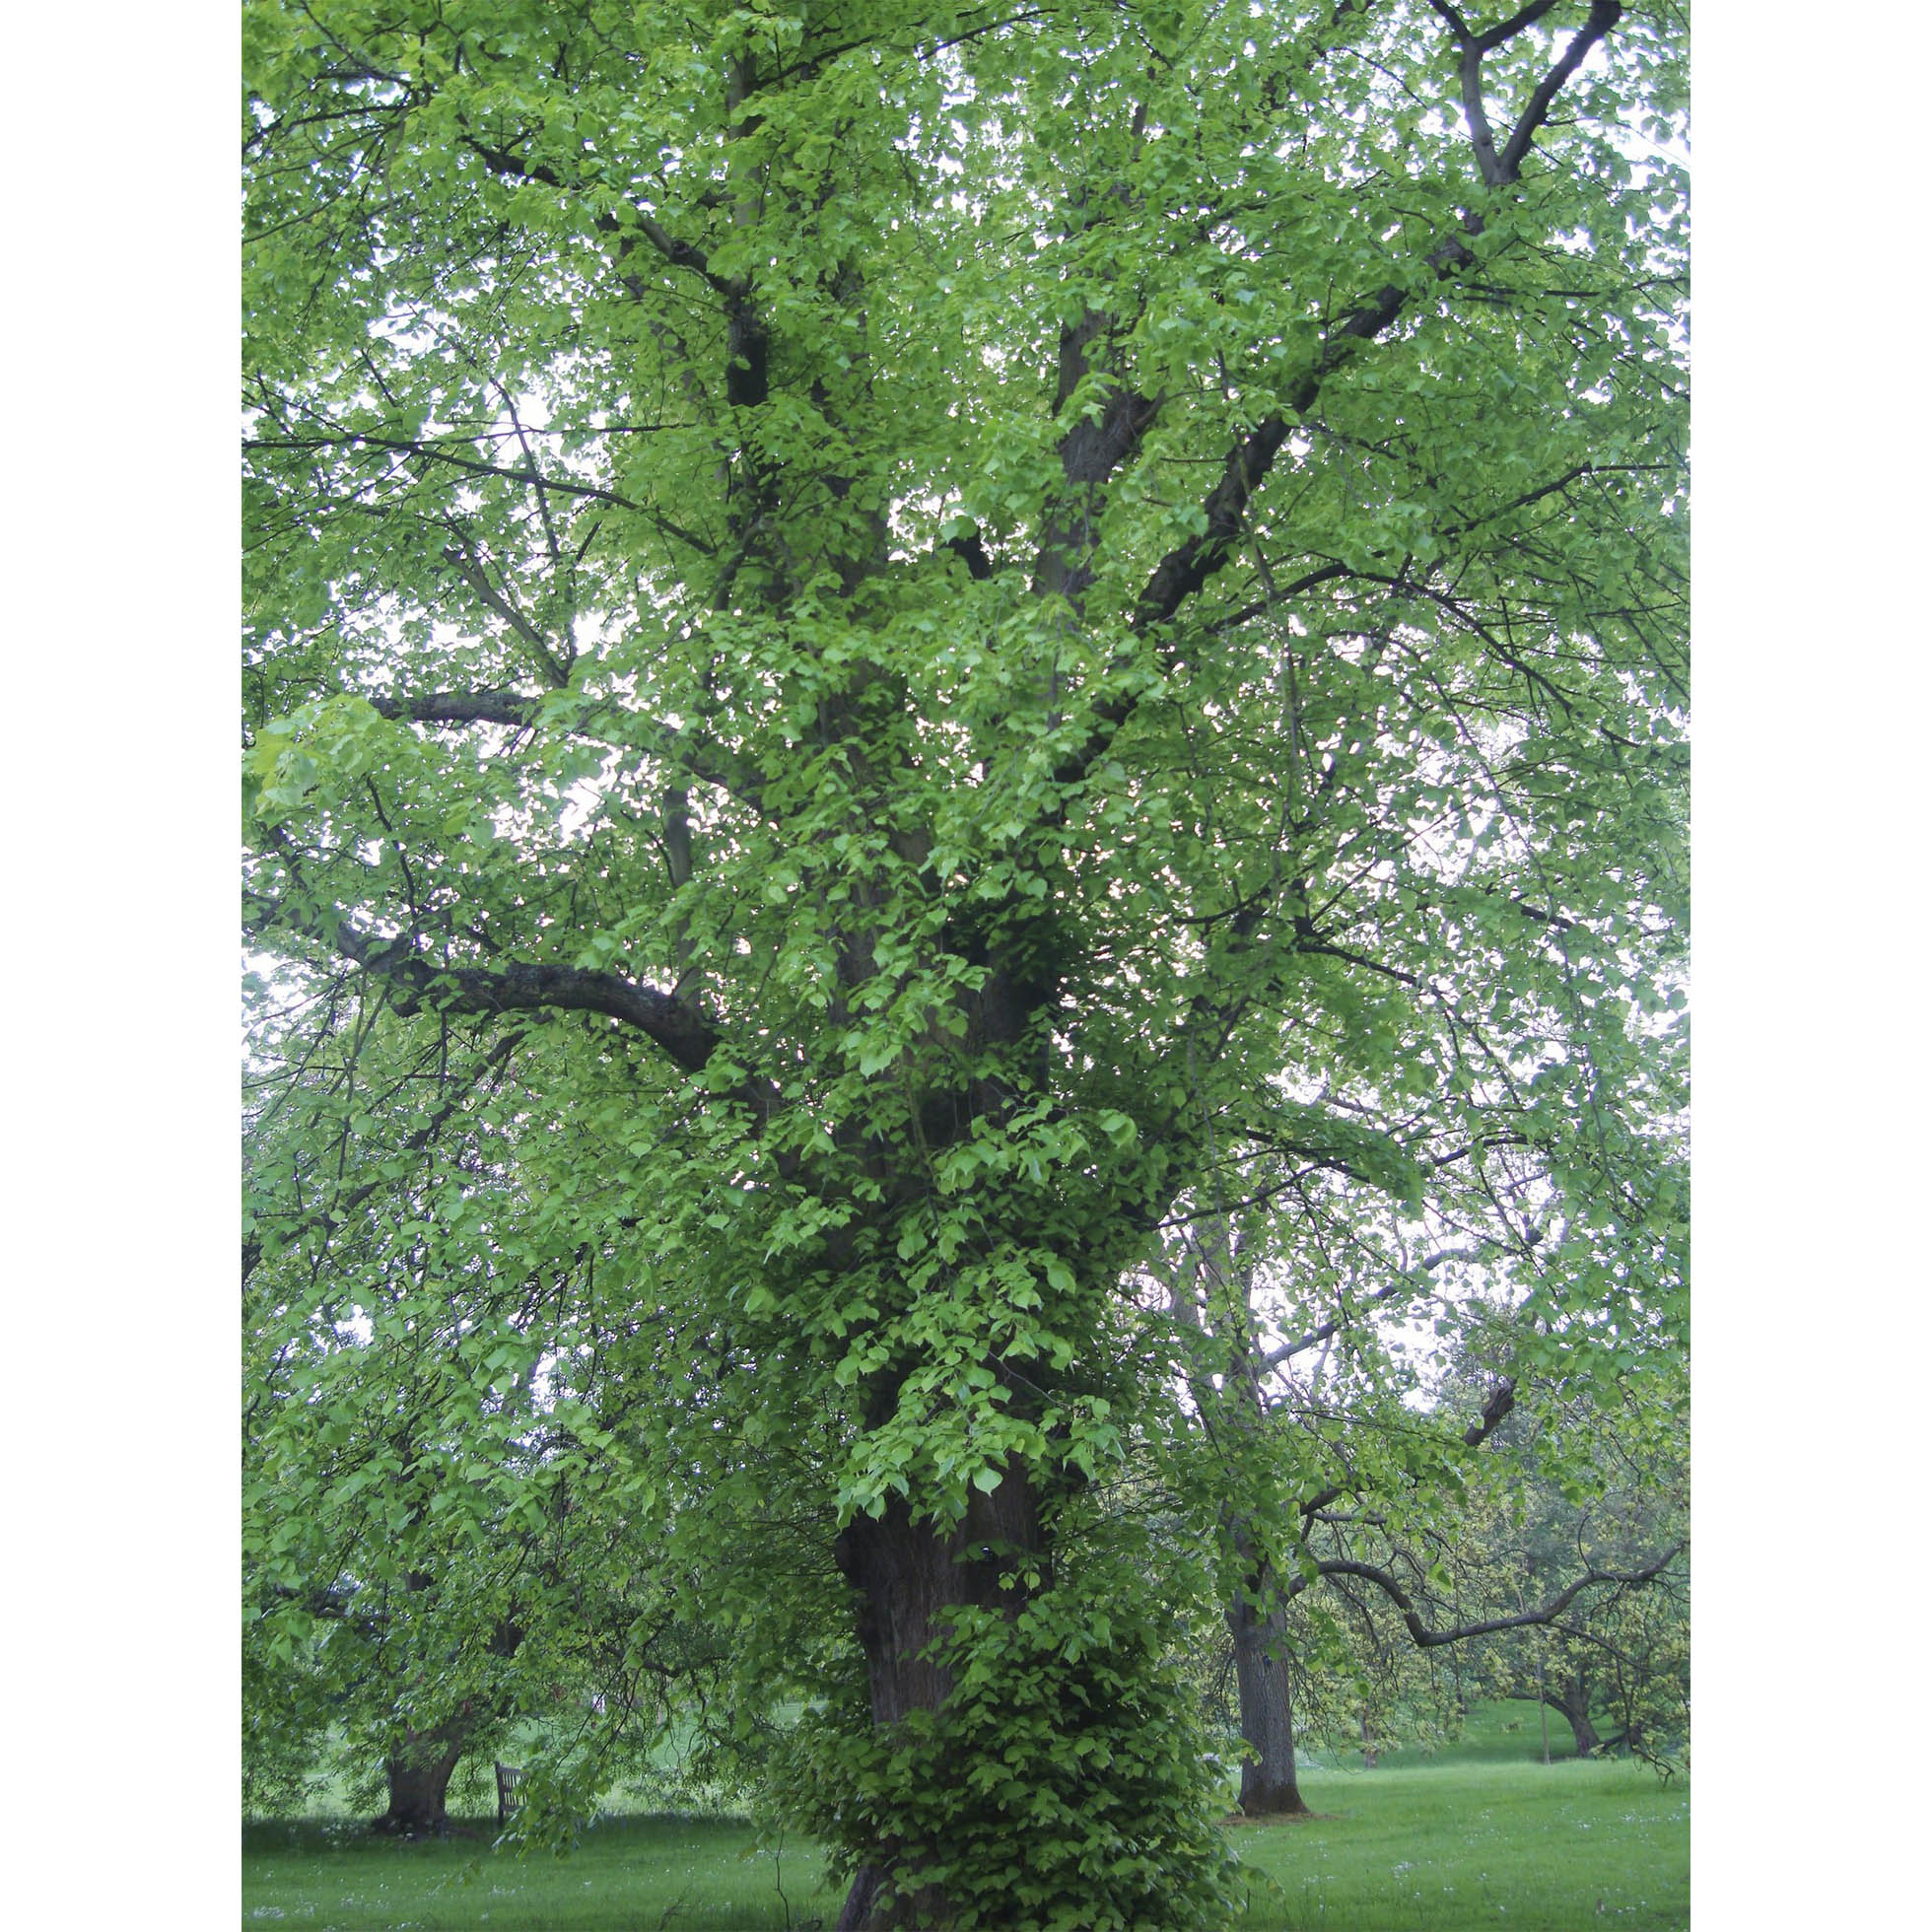 A photograph of a large Tilia lime tree, with bright green leaves and green grass growing around it.